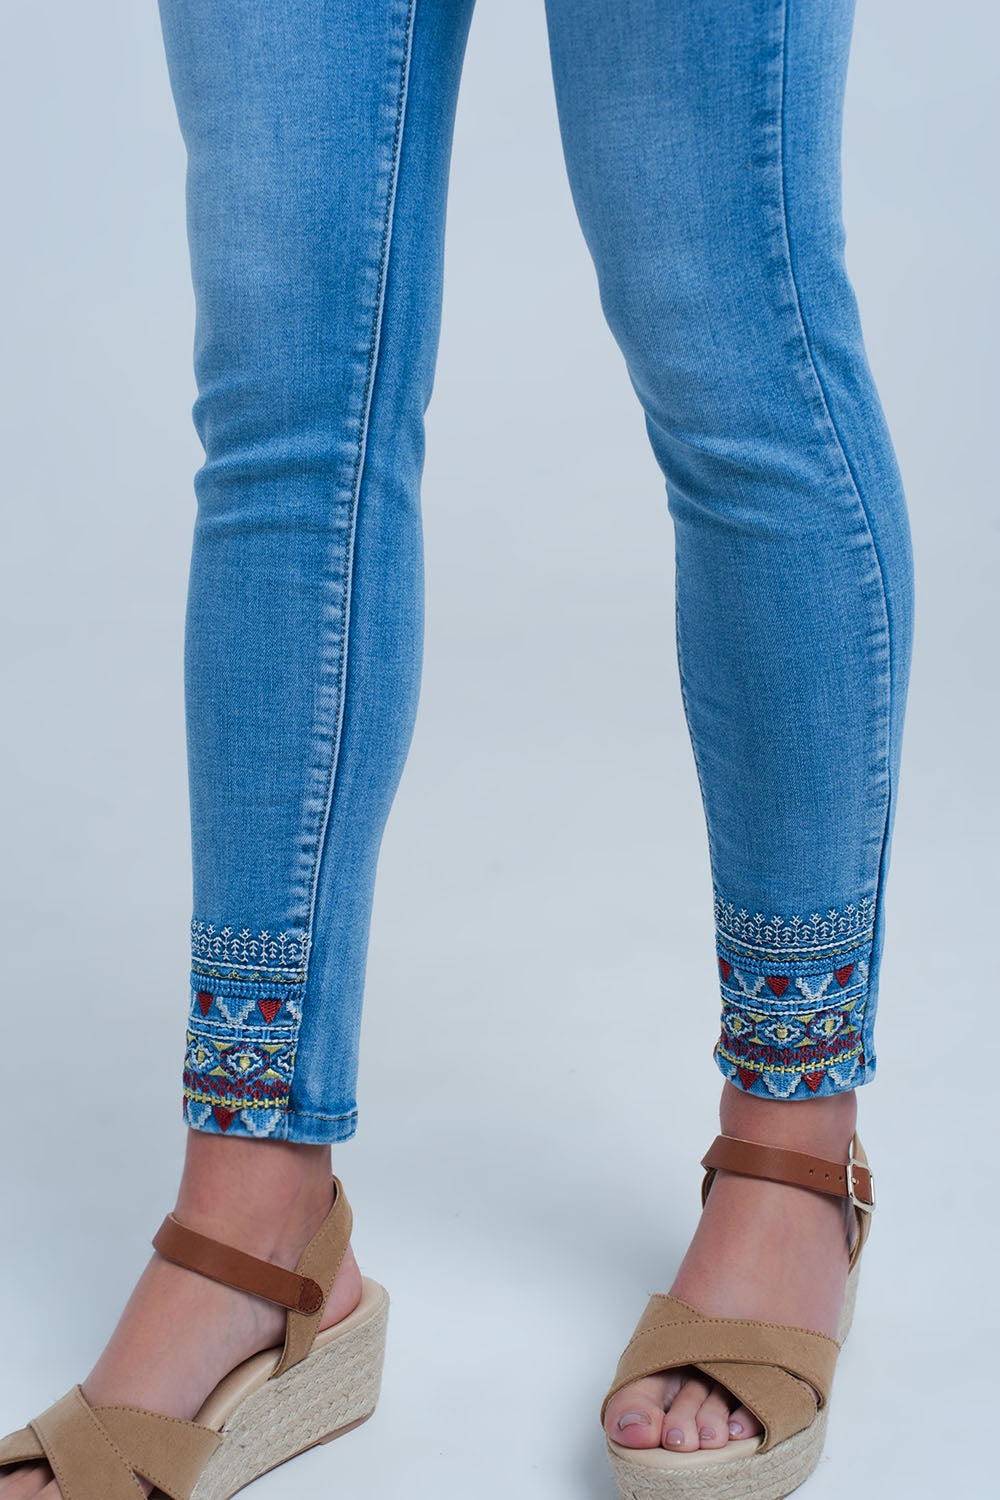 Jeans With Embroidery By The Hems